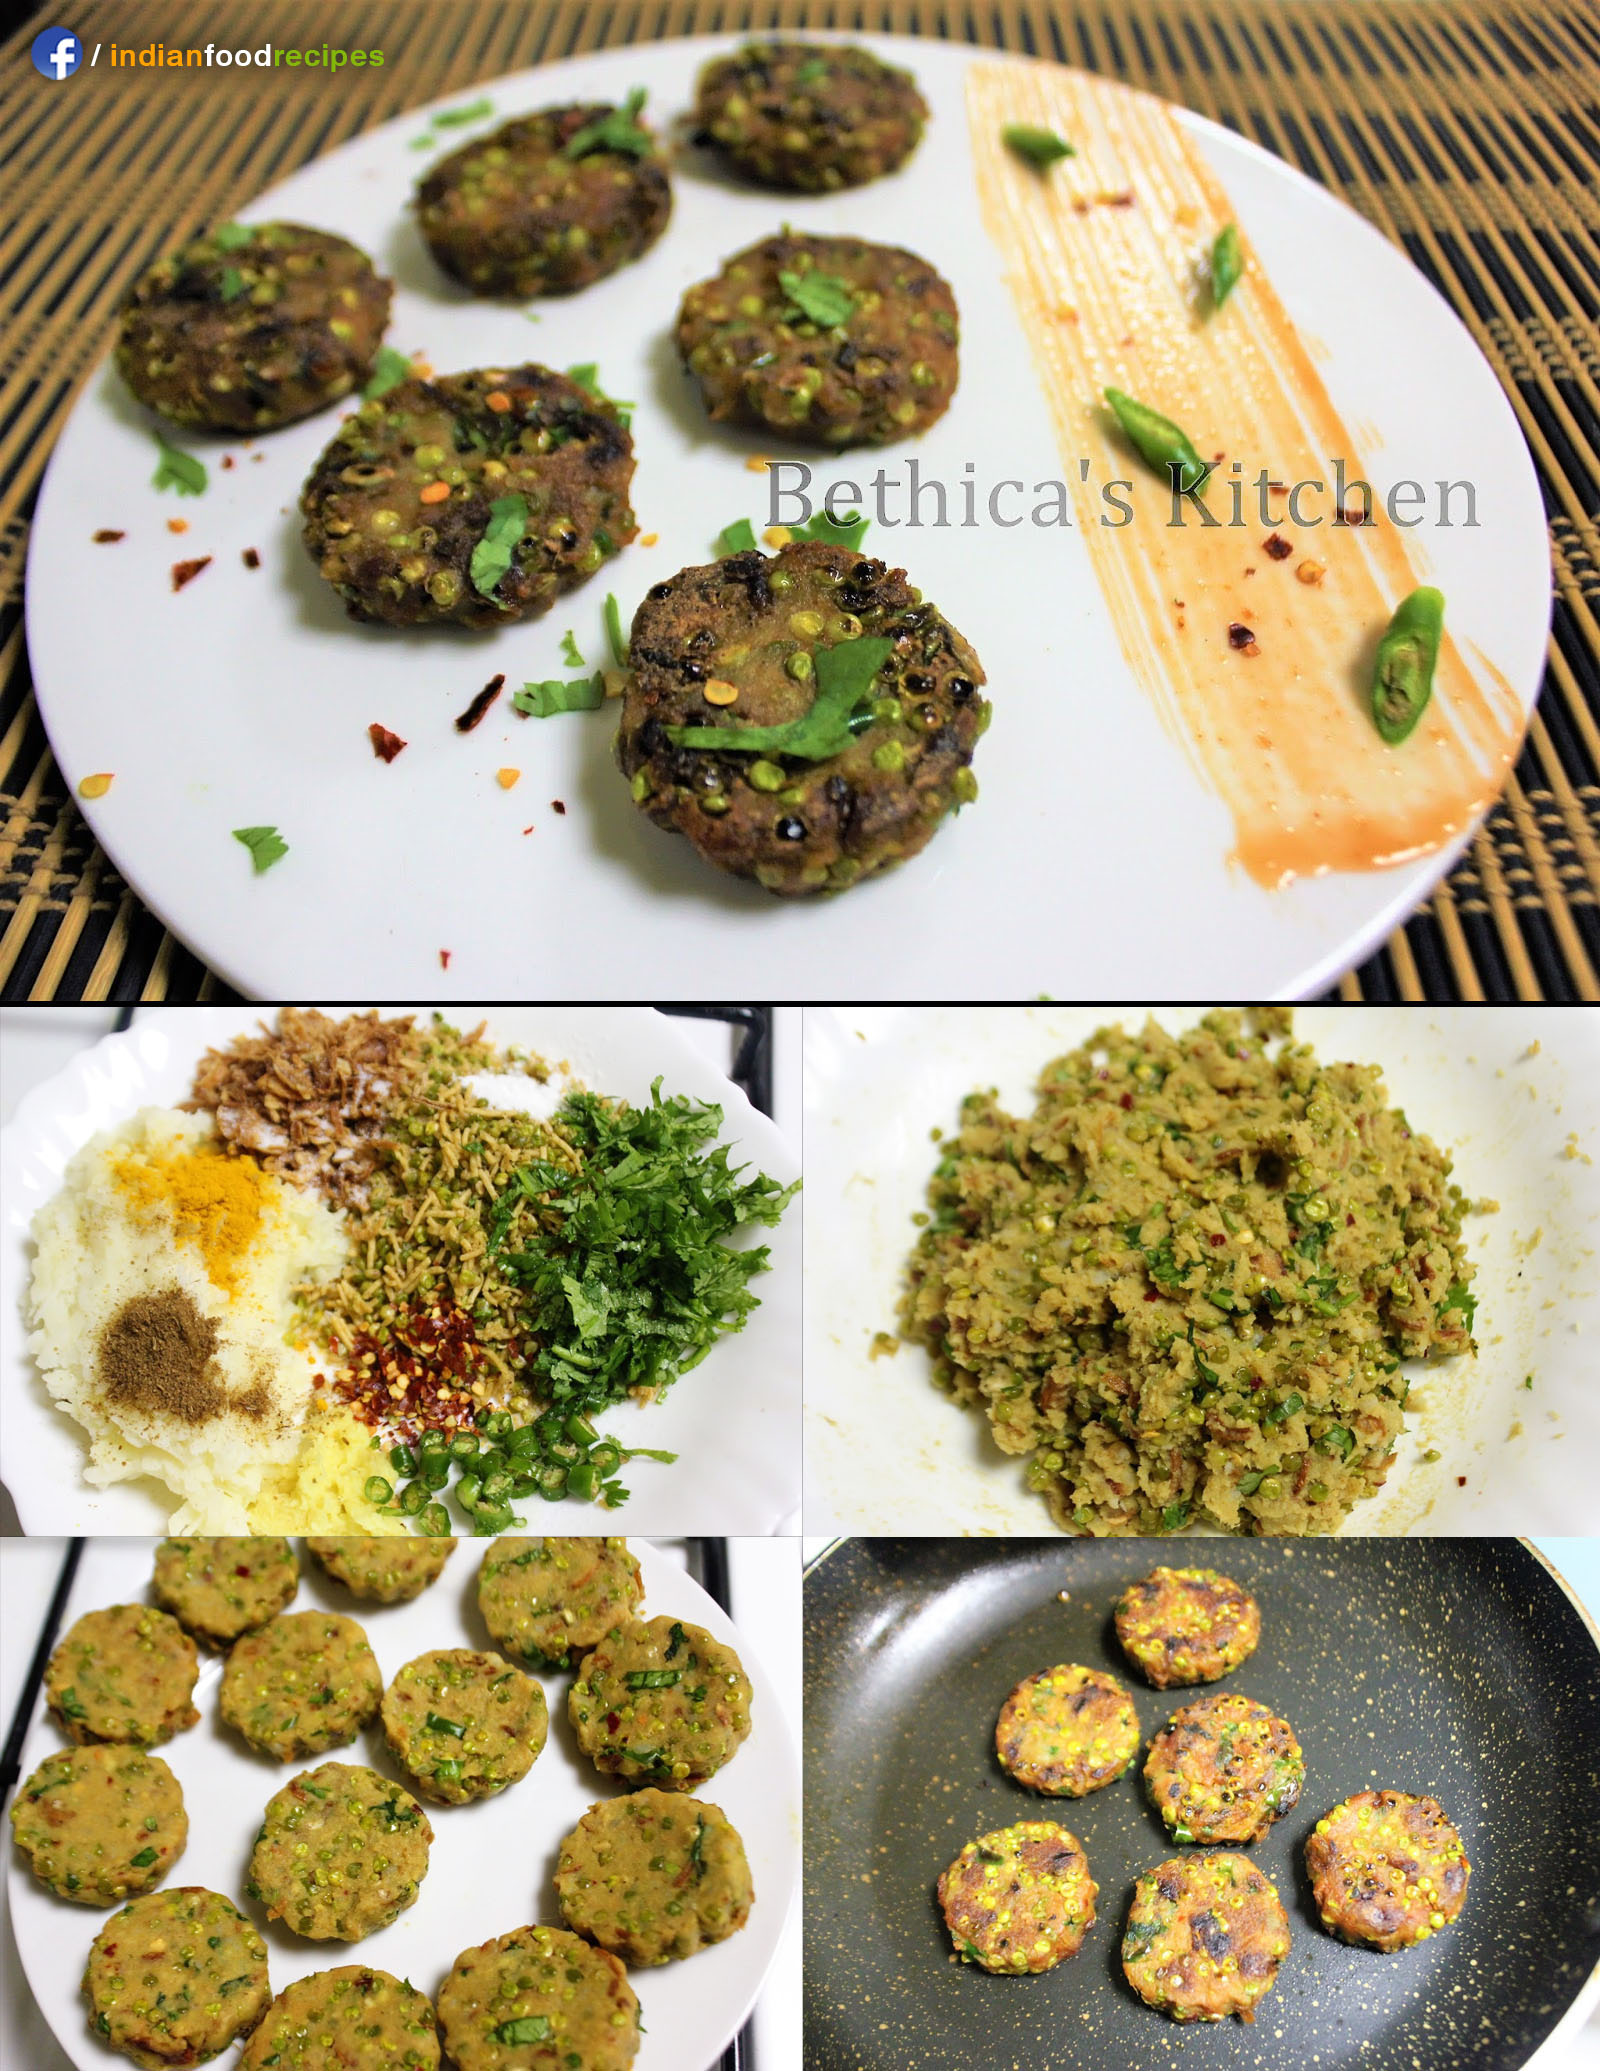 Tender Jowar Tikki / Cutlet (Sorghum Patties) recipe step by step